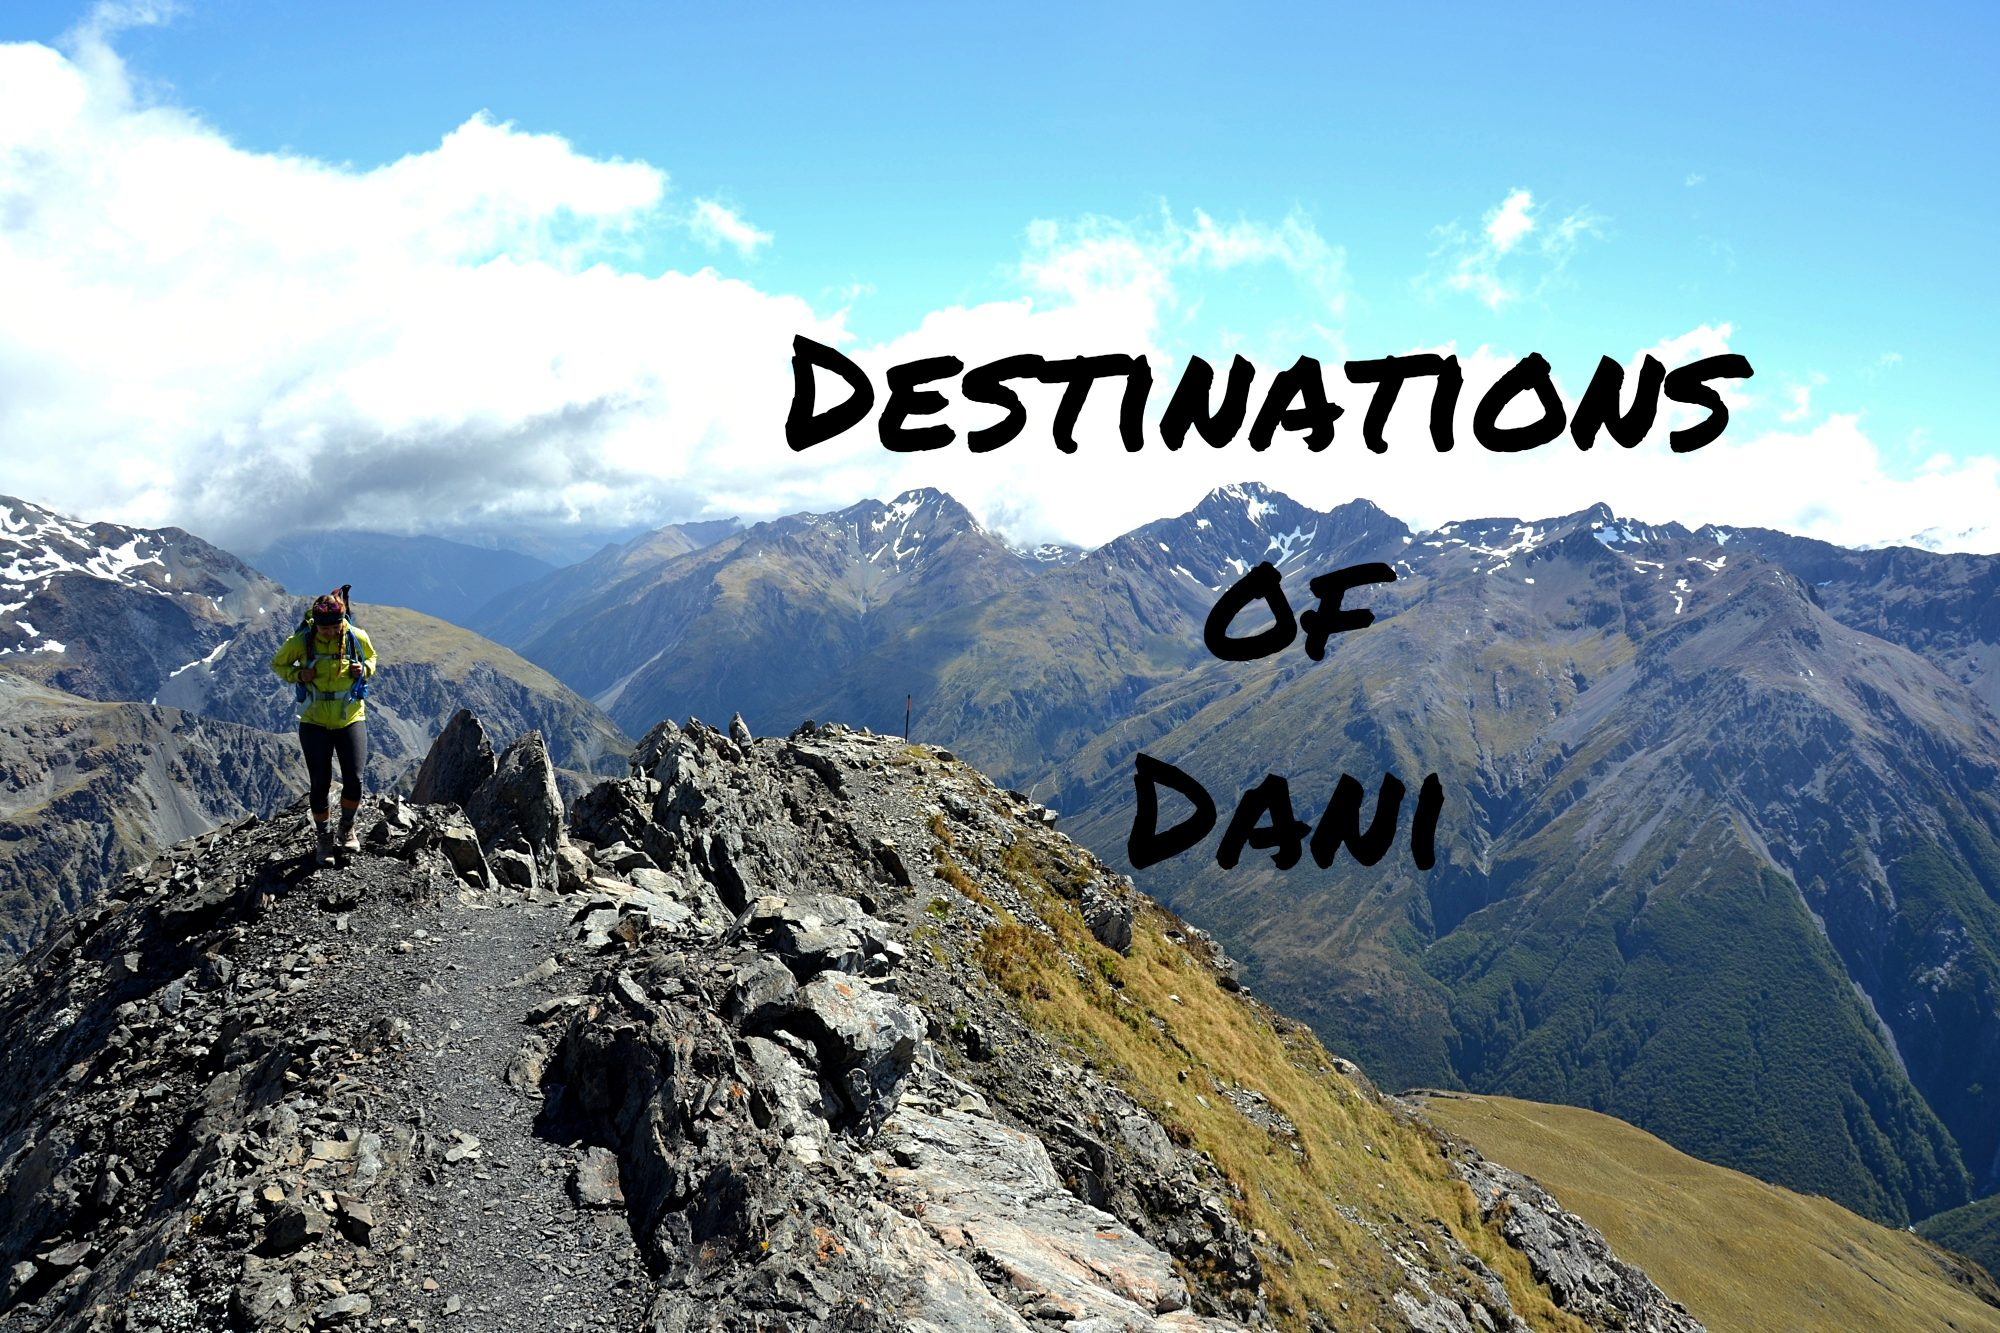 Destinations of Dani